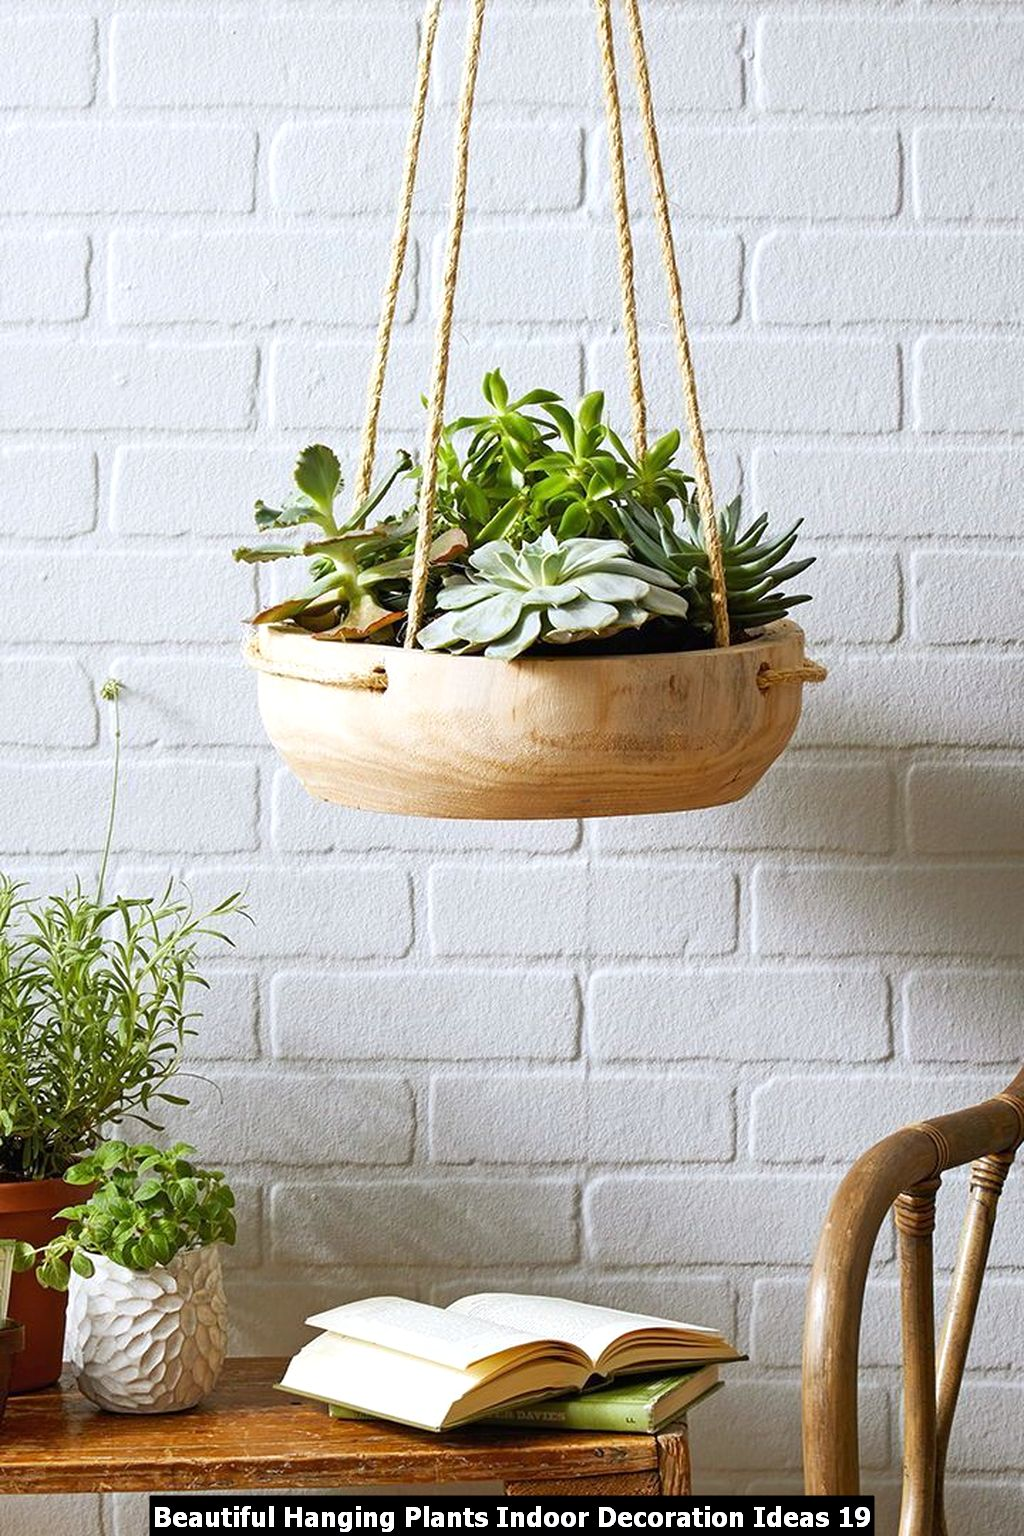 Beautiful Hanging Plants Indoor Decoration Ideas 19